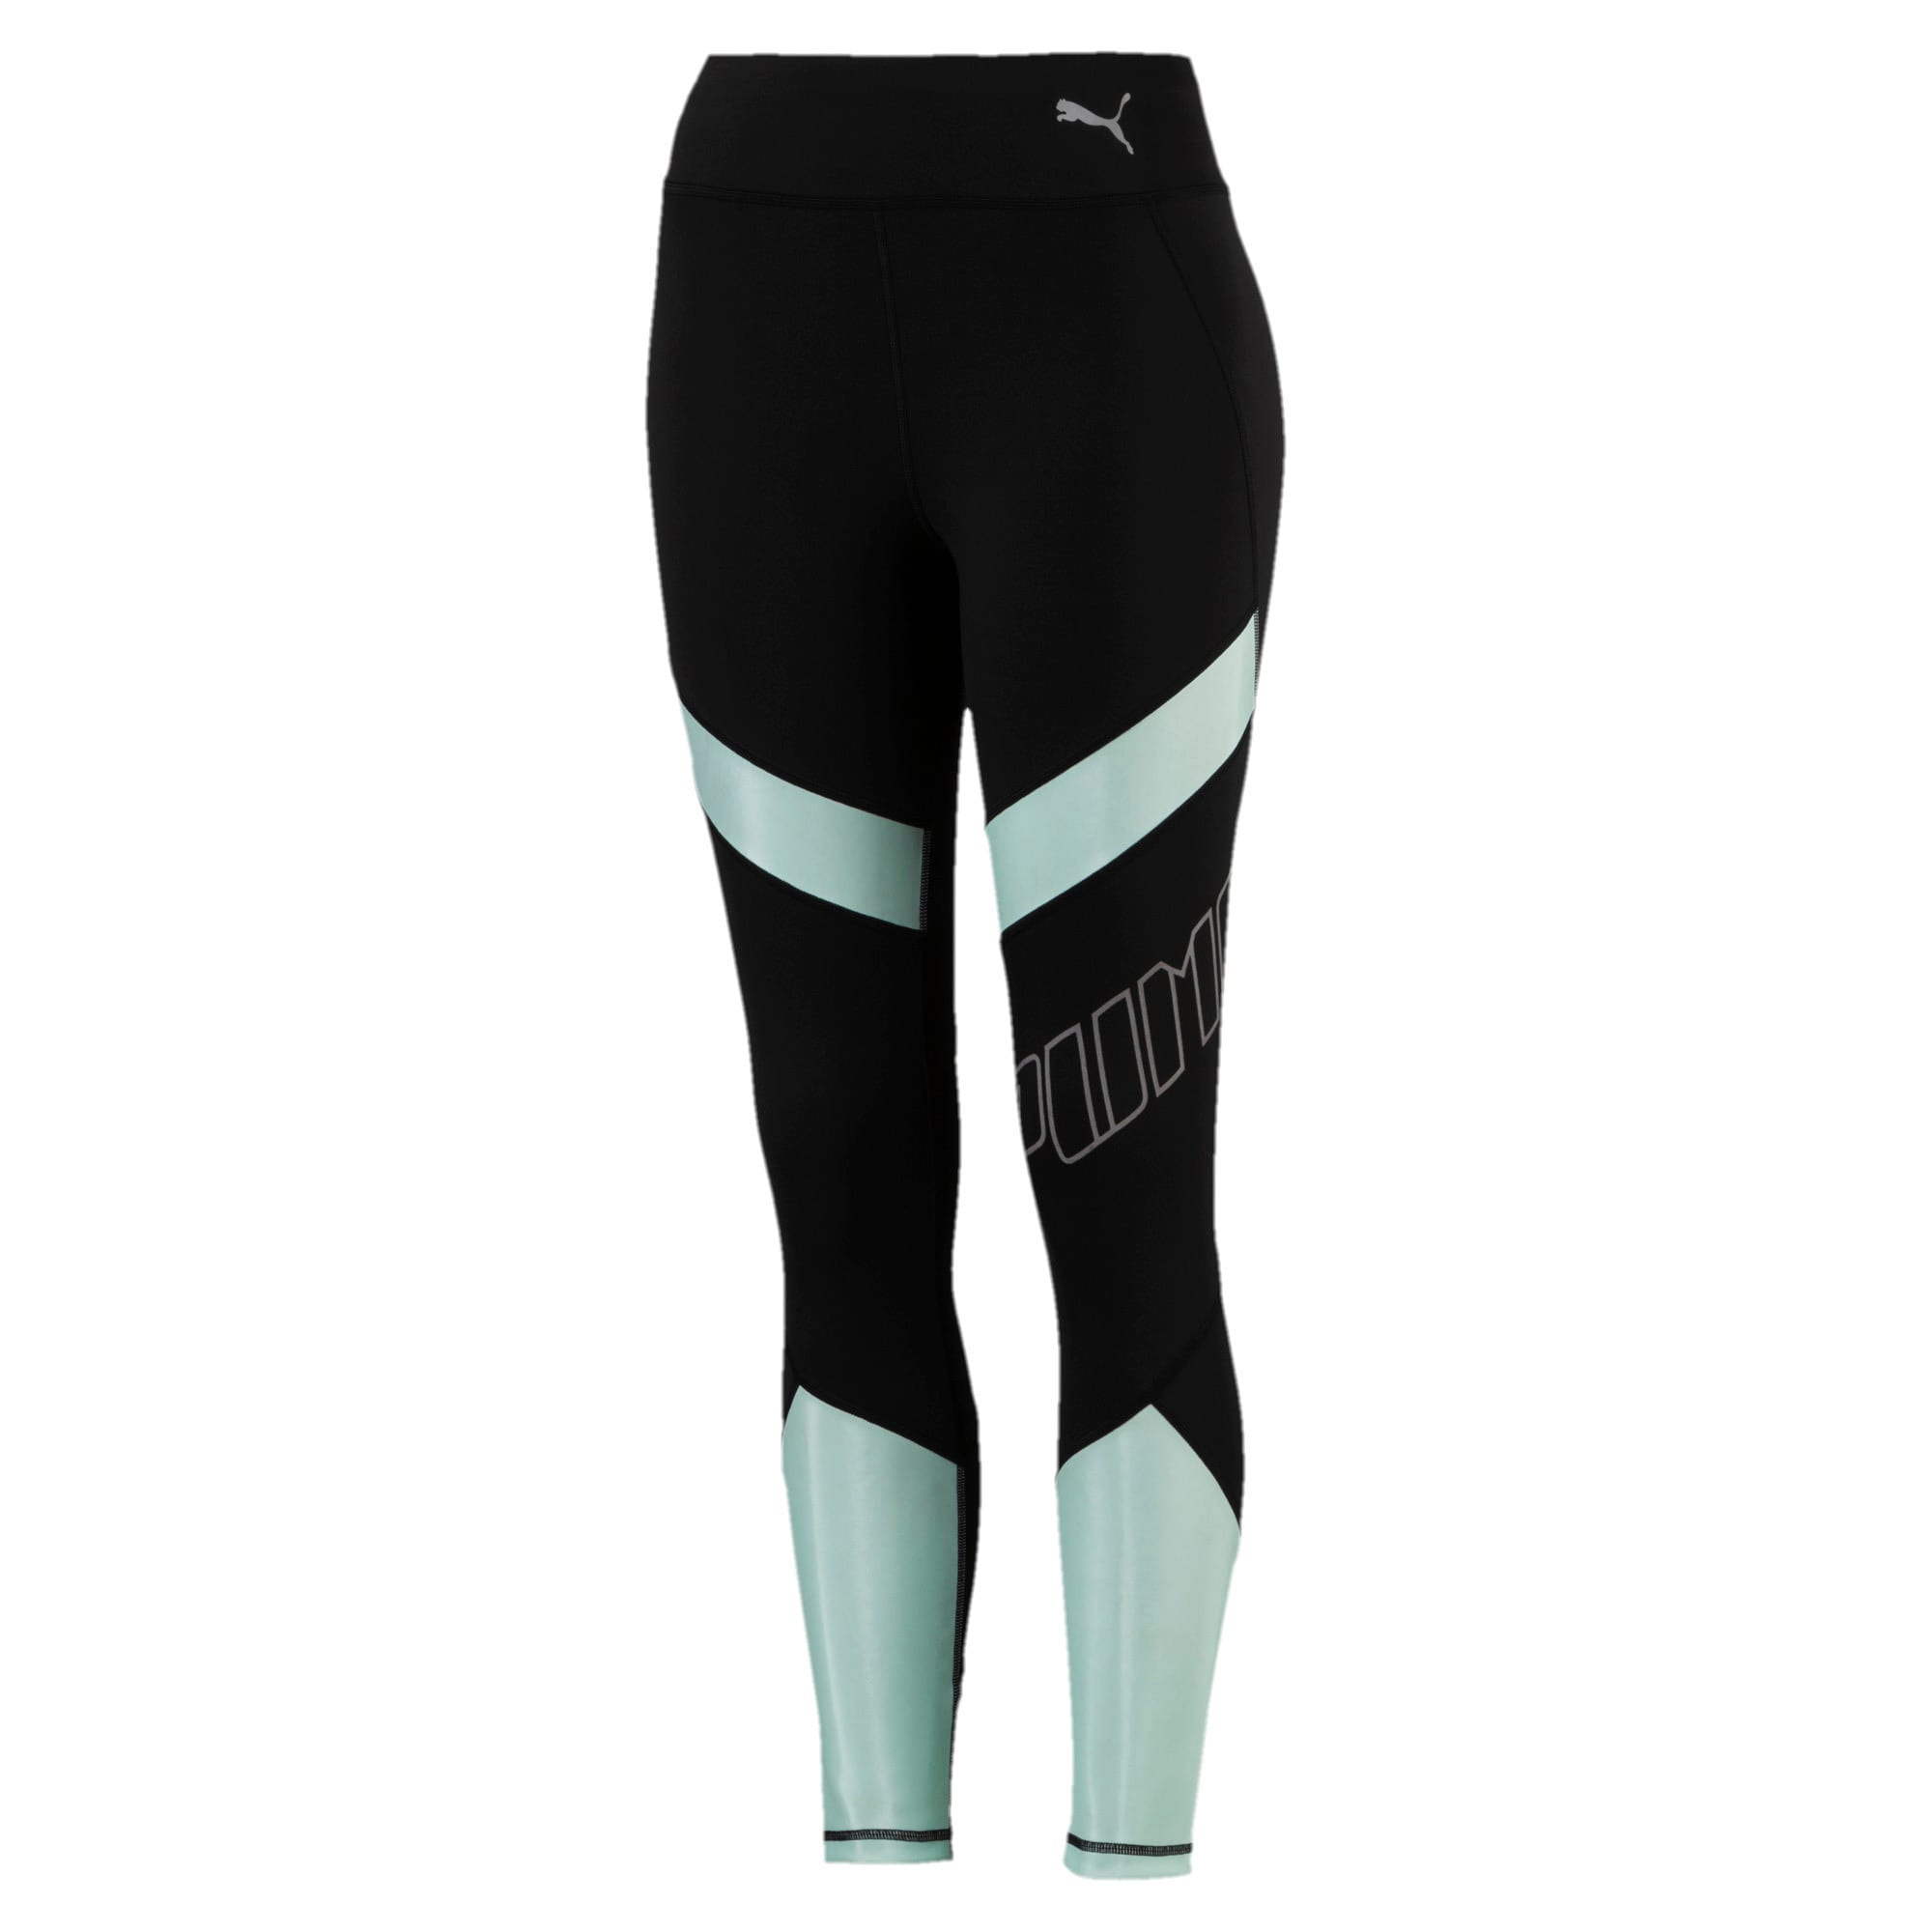 Thumbnail 4 of Elite Speed Women's Leggings, Puma Black-Fair Aqua, medium